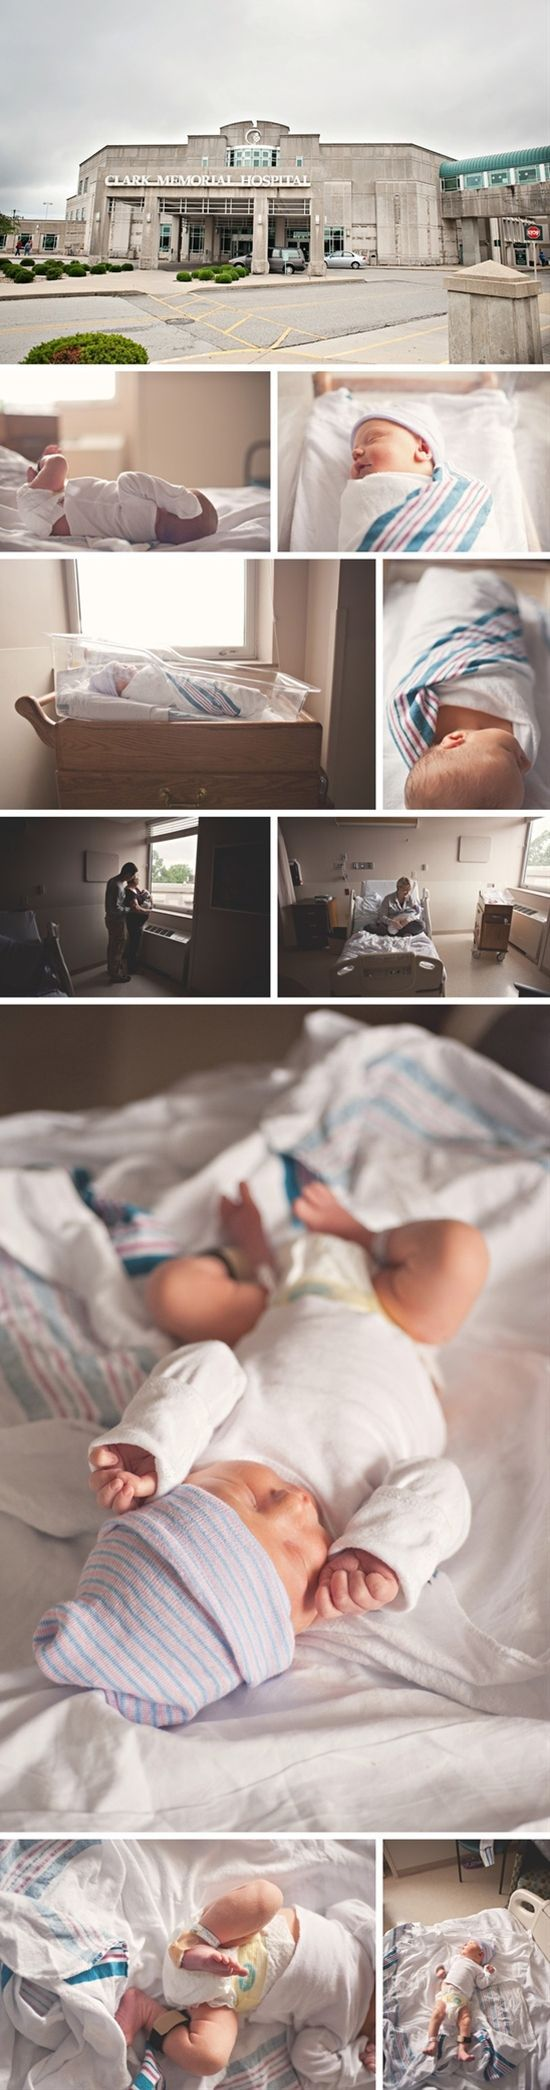 Hospital Newborn Photo Session - these are really cute @moxiethrift on etsy Daehling: moxiethrift Daehling: moxiethrift Daehling: moxiethrift Daehling: mox...